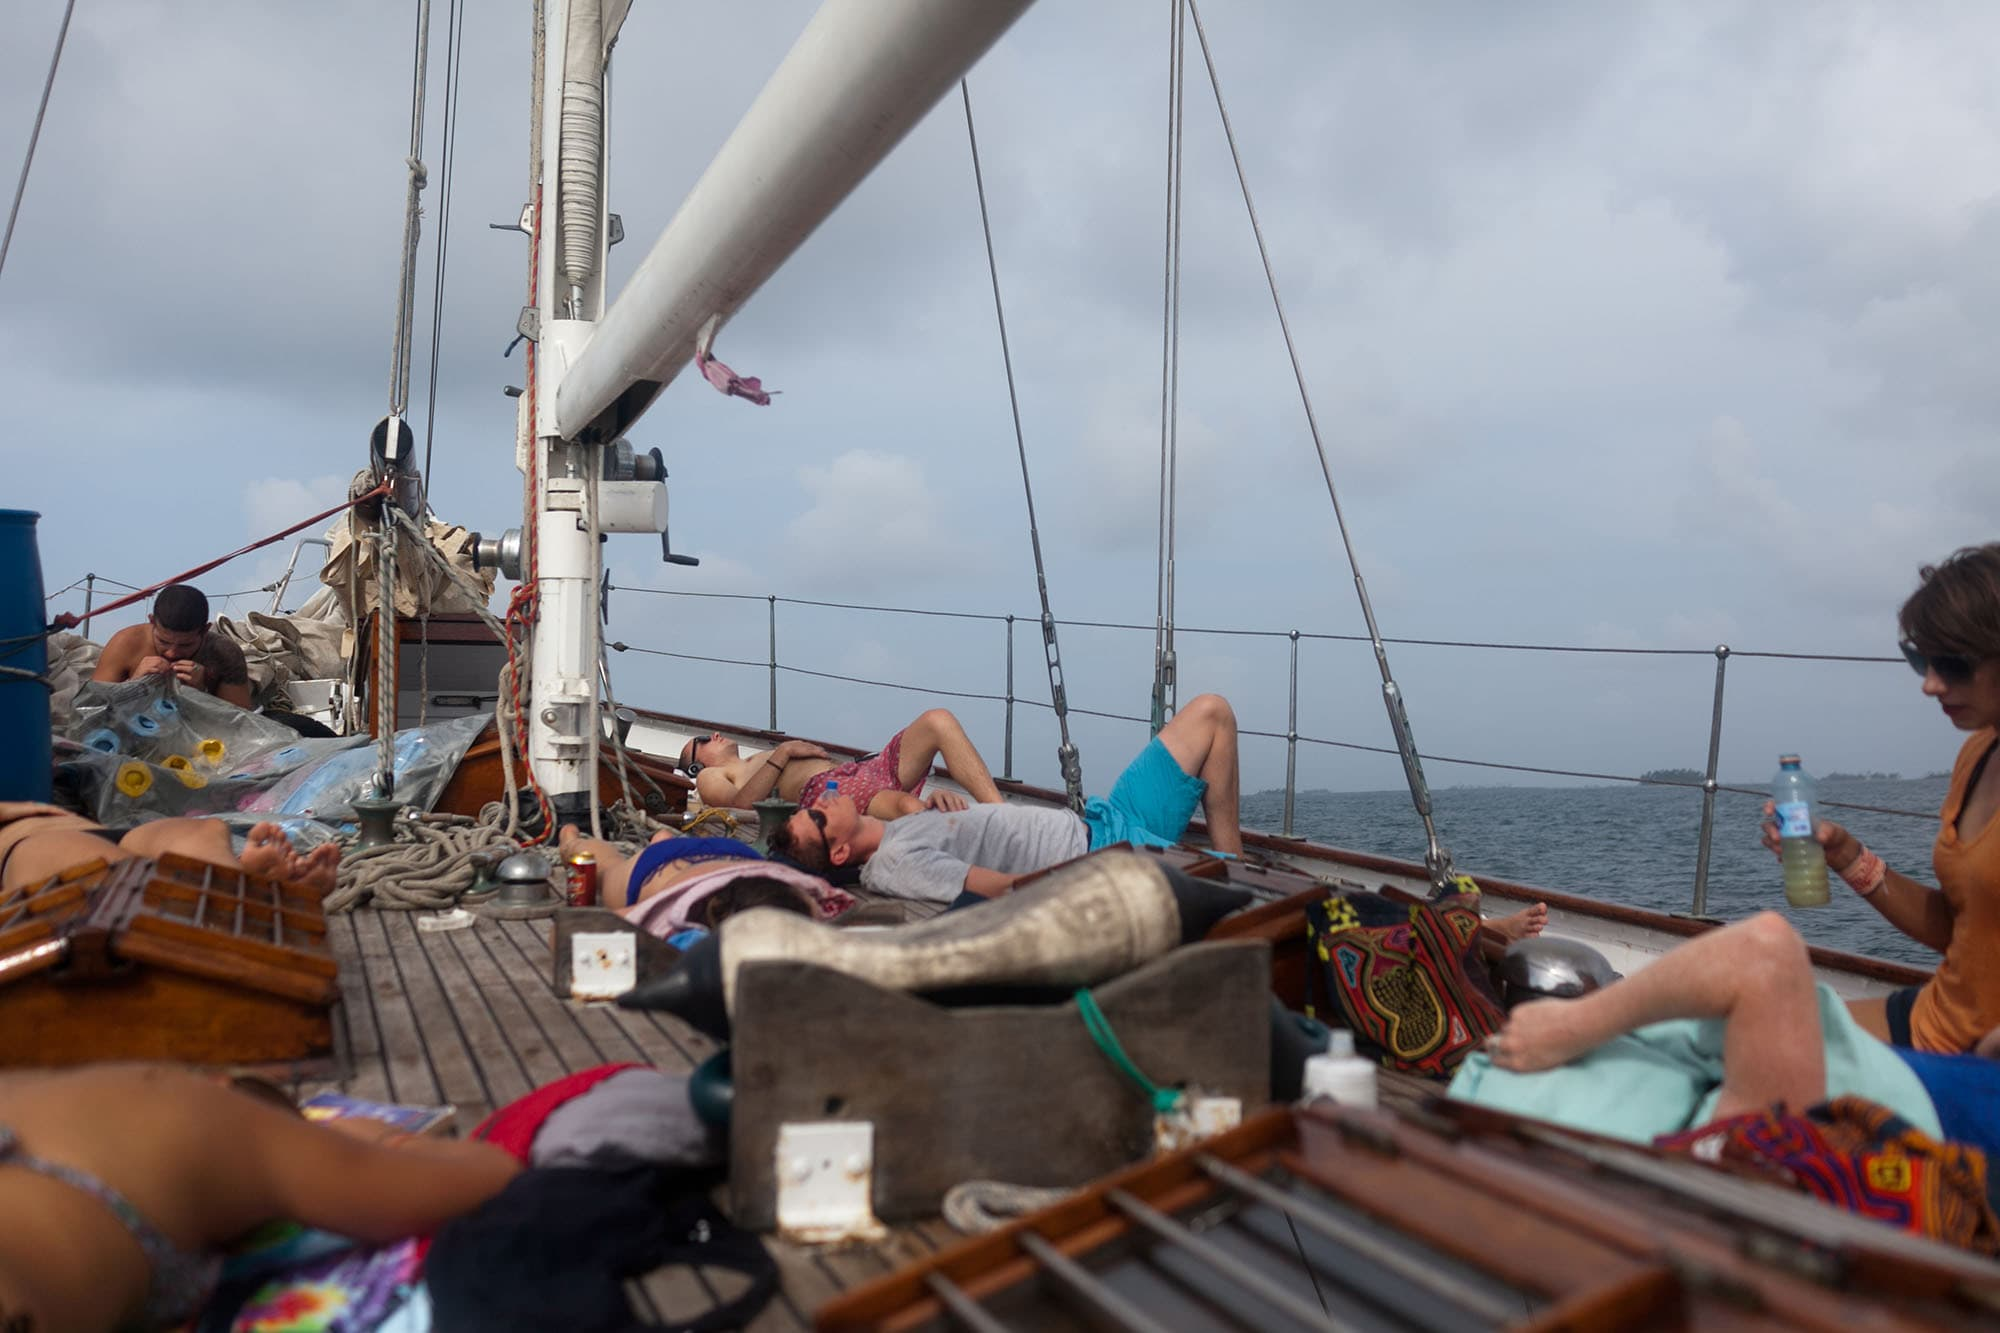 Panama to Colombia Sailing Trip